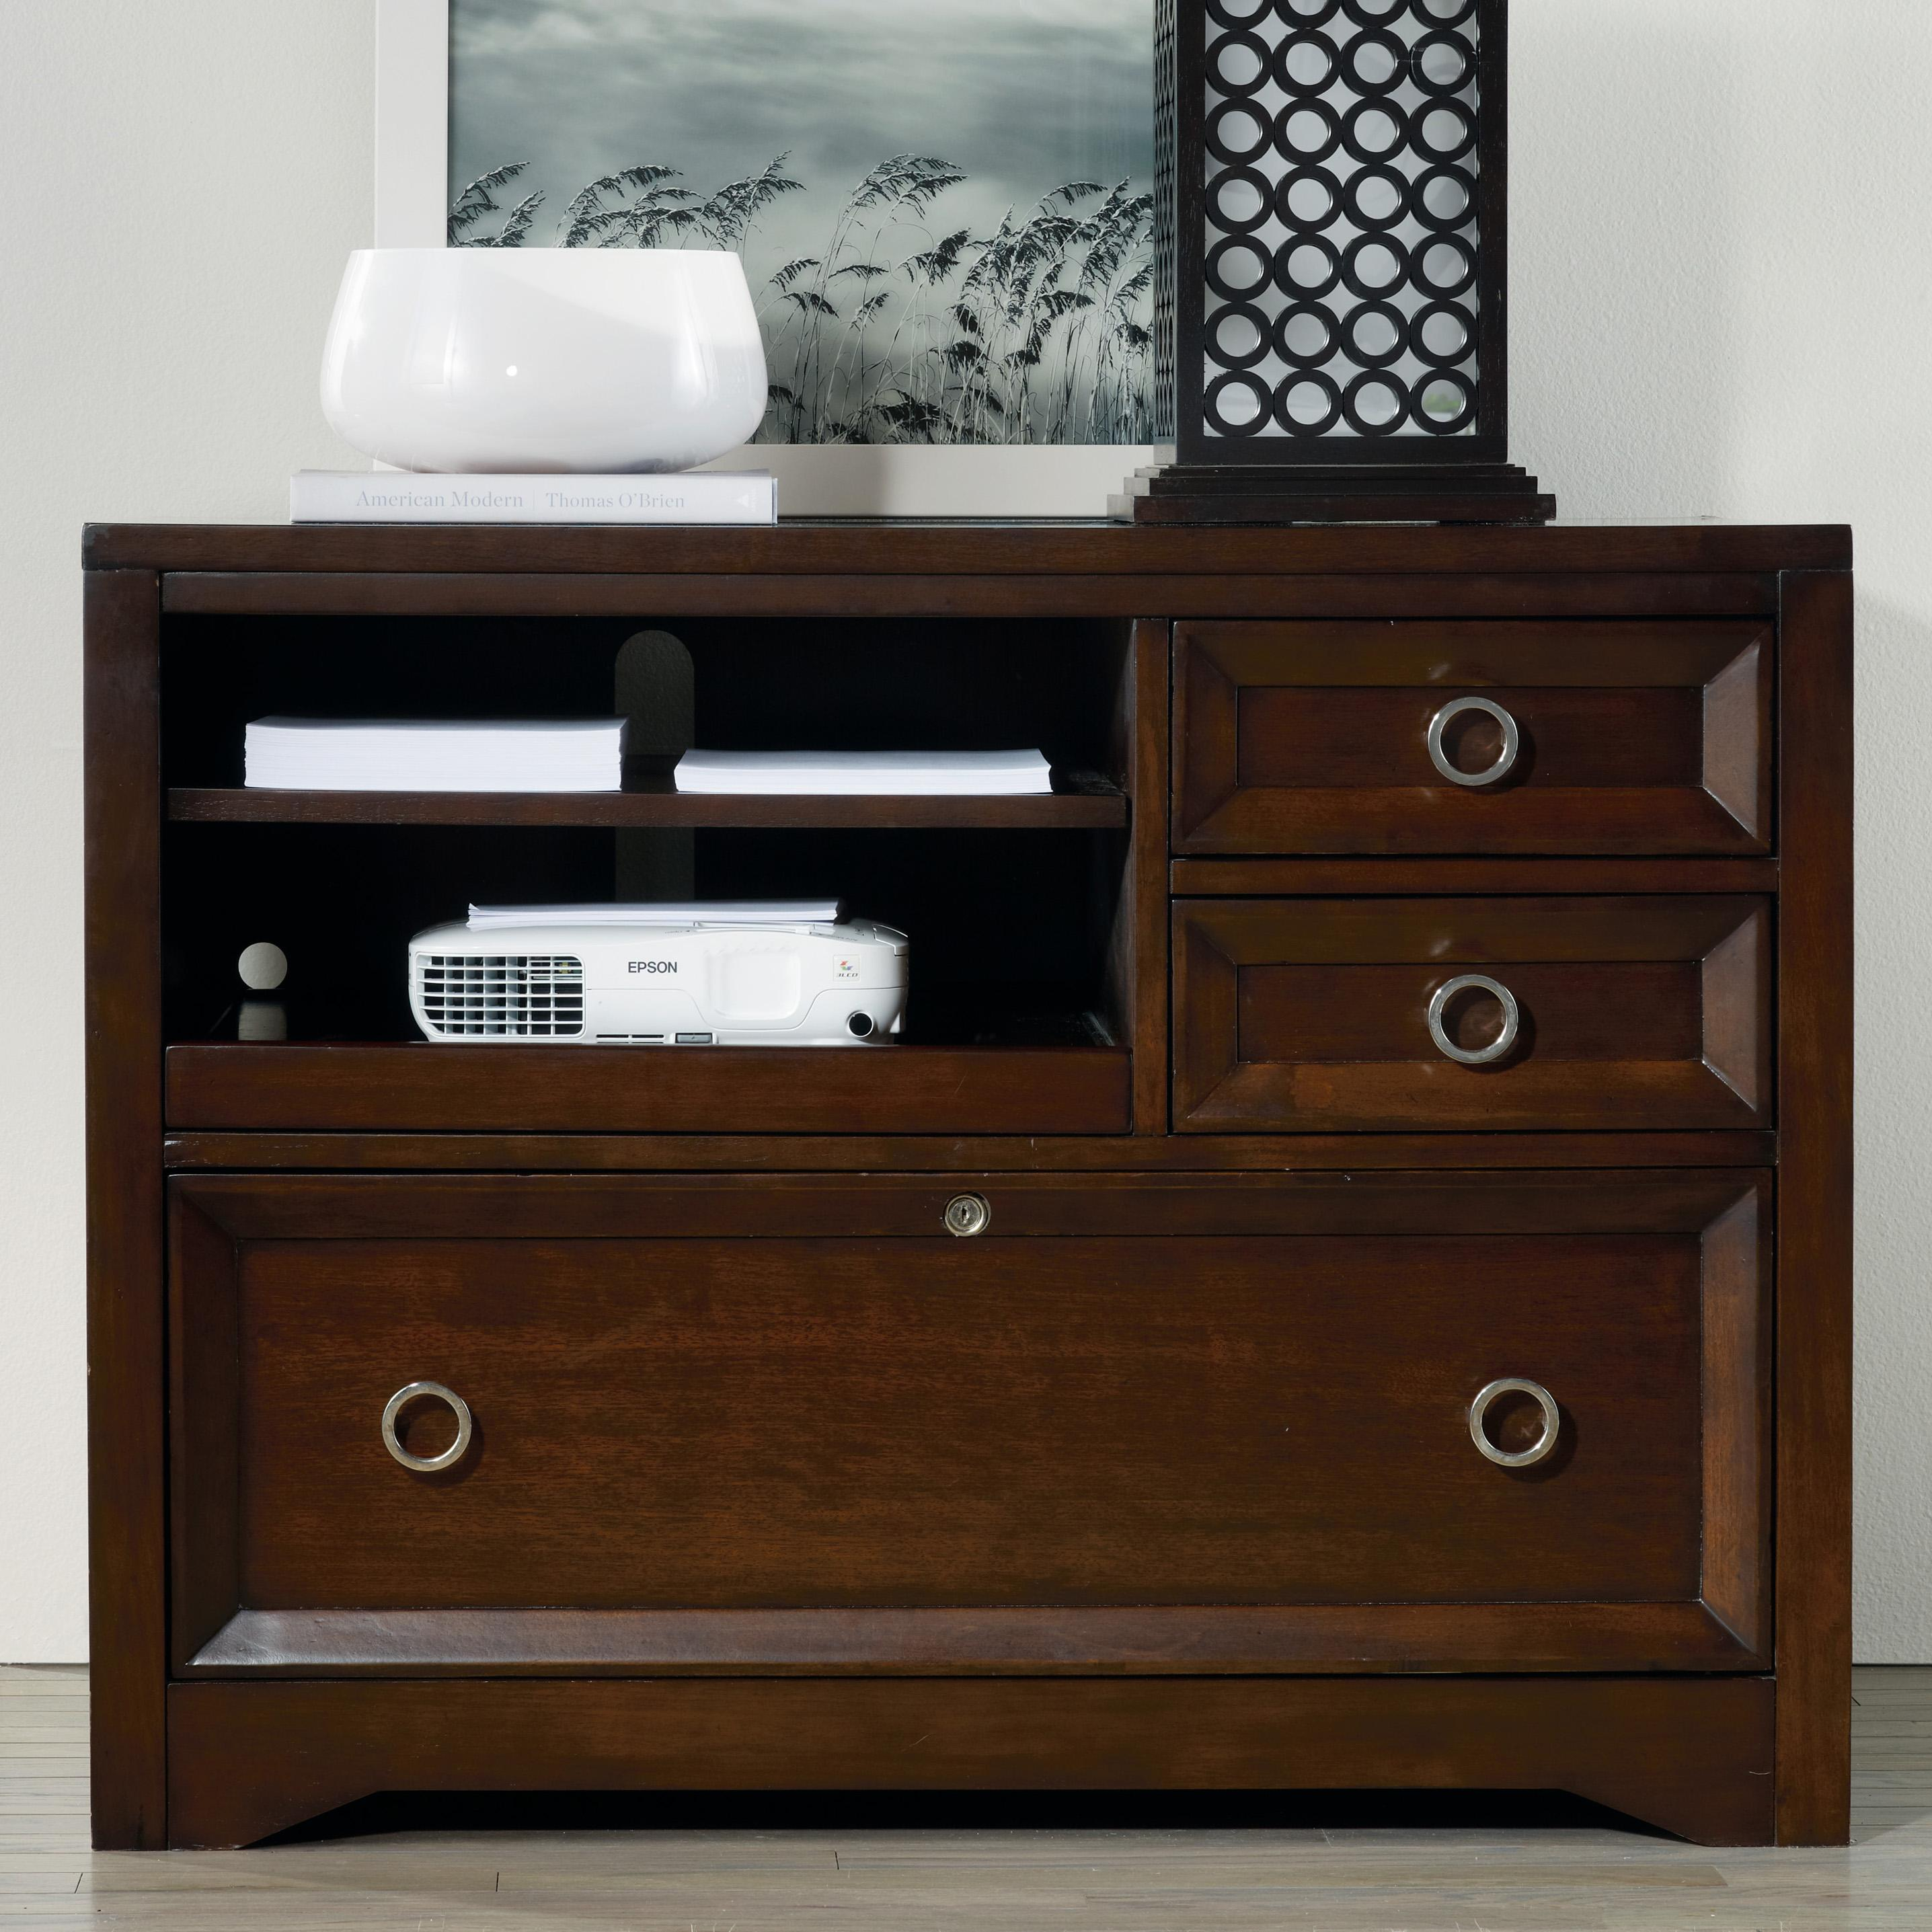 Hooker Furniture Kinsey Kinsey Utility File - Item Number: 5066-10413